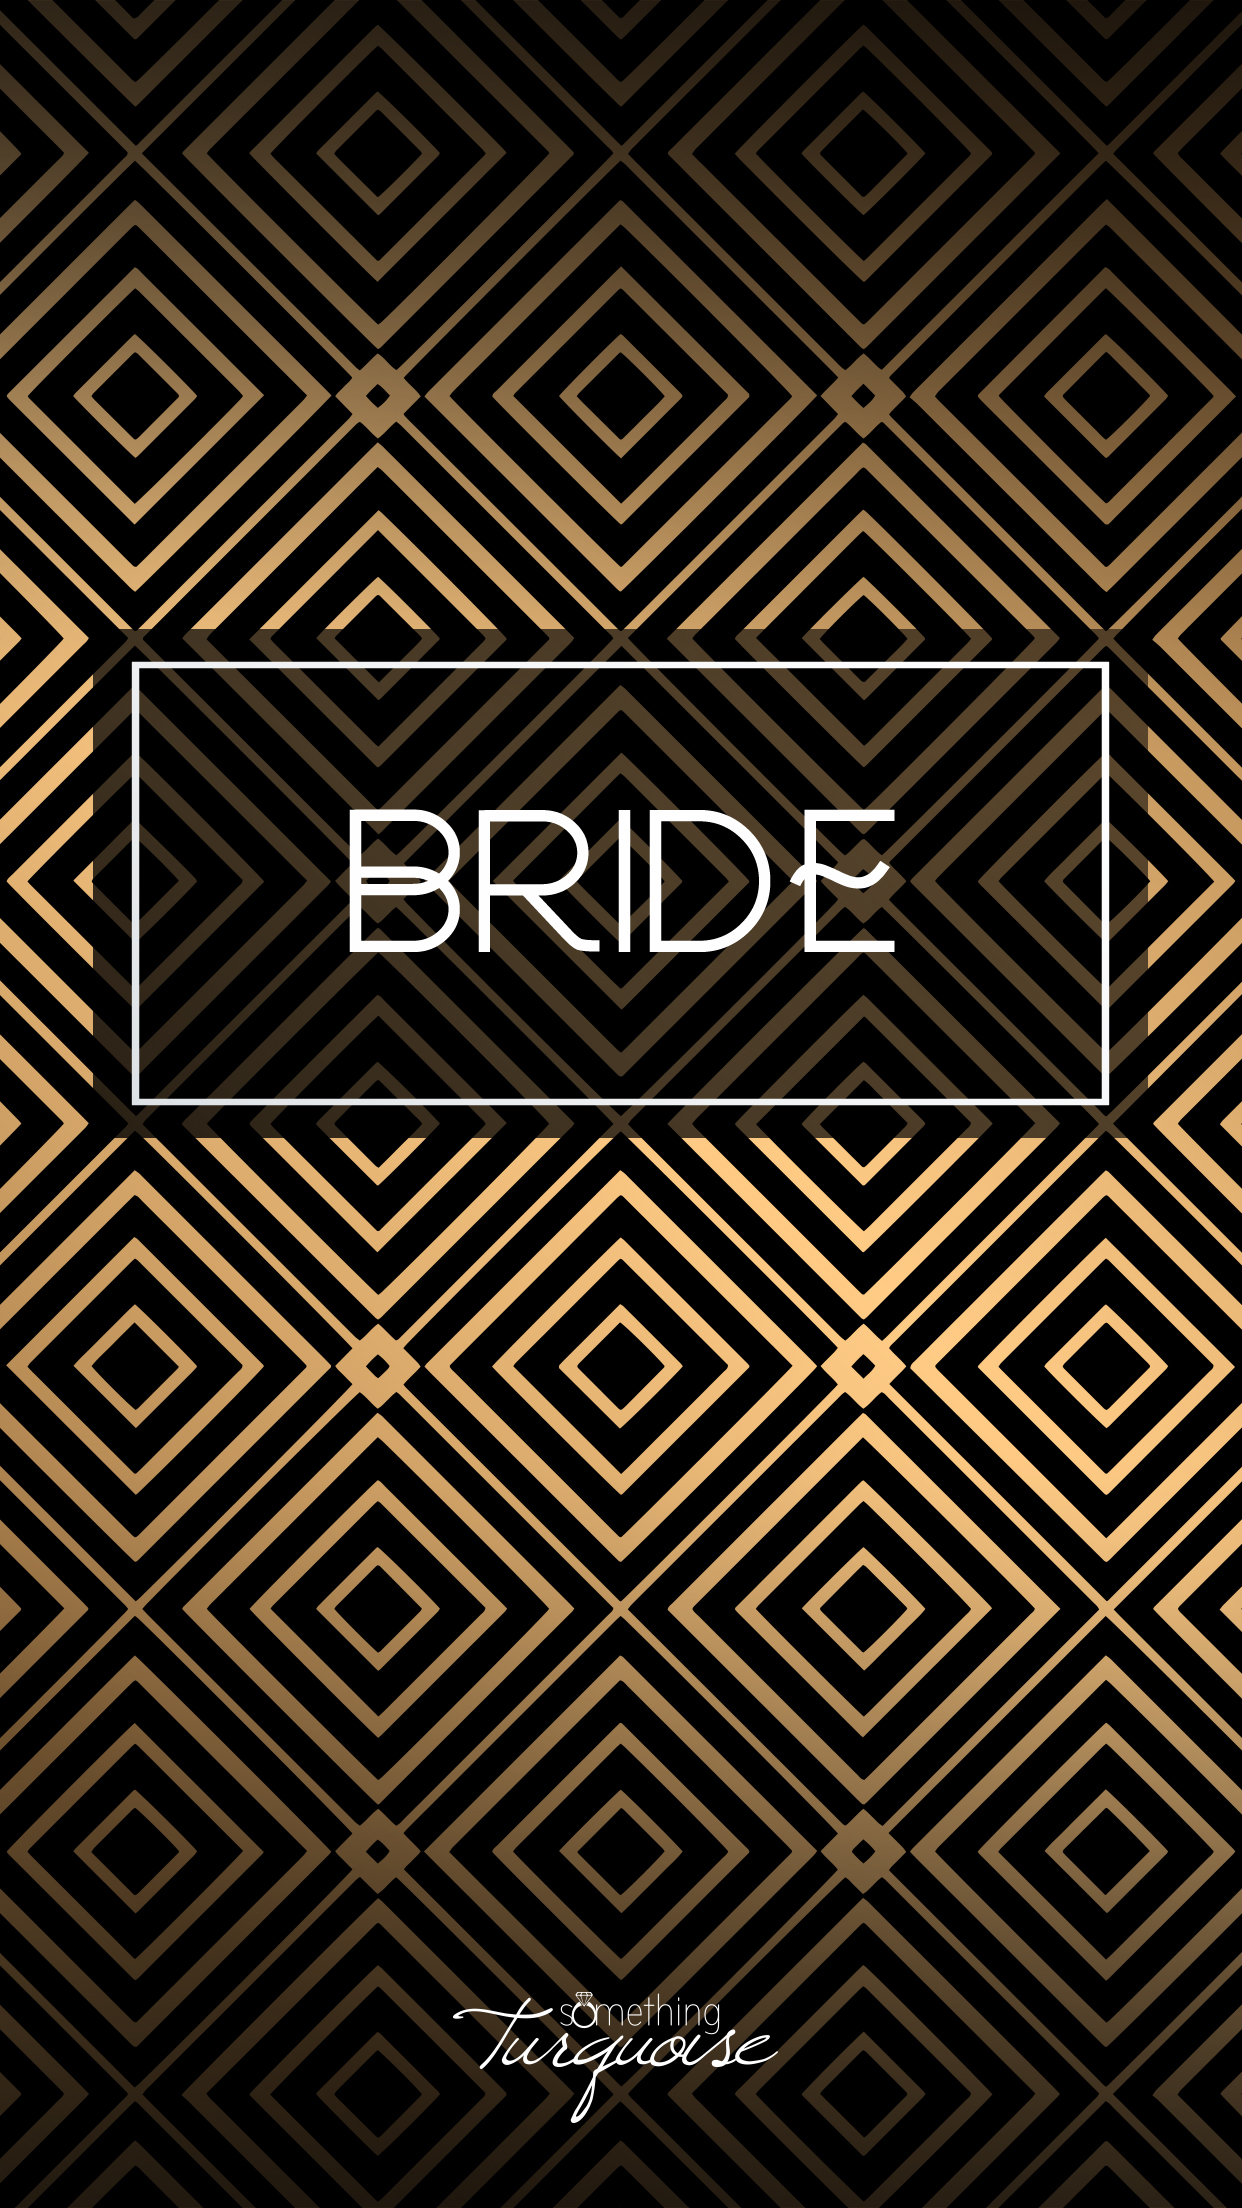 Check out this gorgeous BRIDE iPhone wallpaper, it's free!